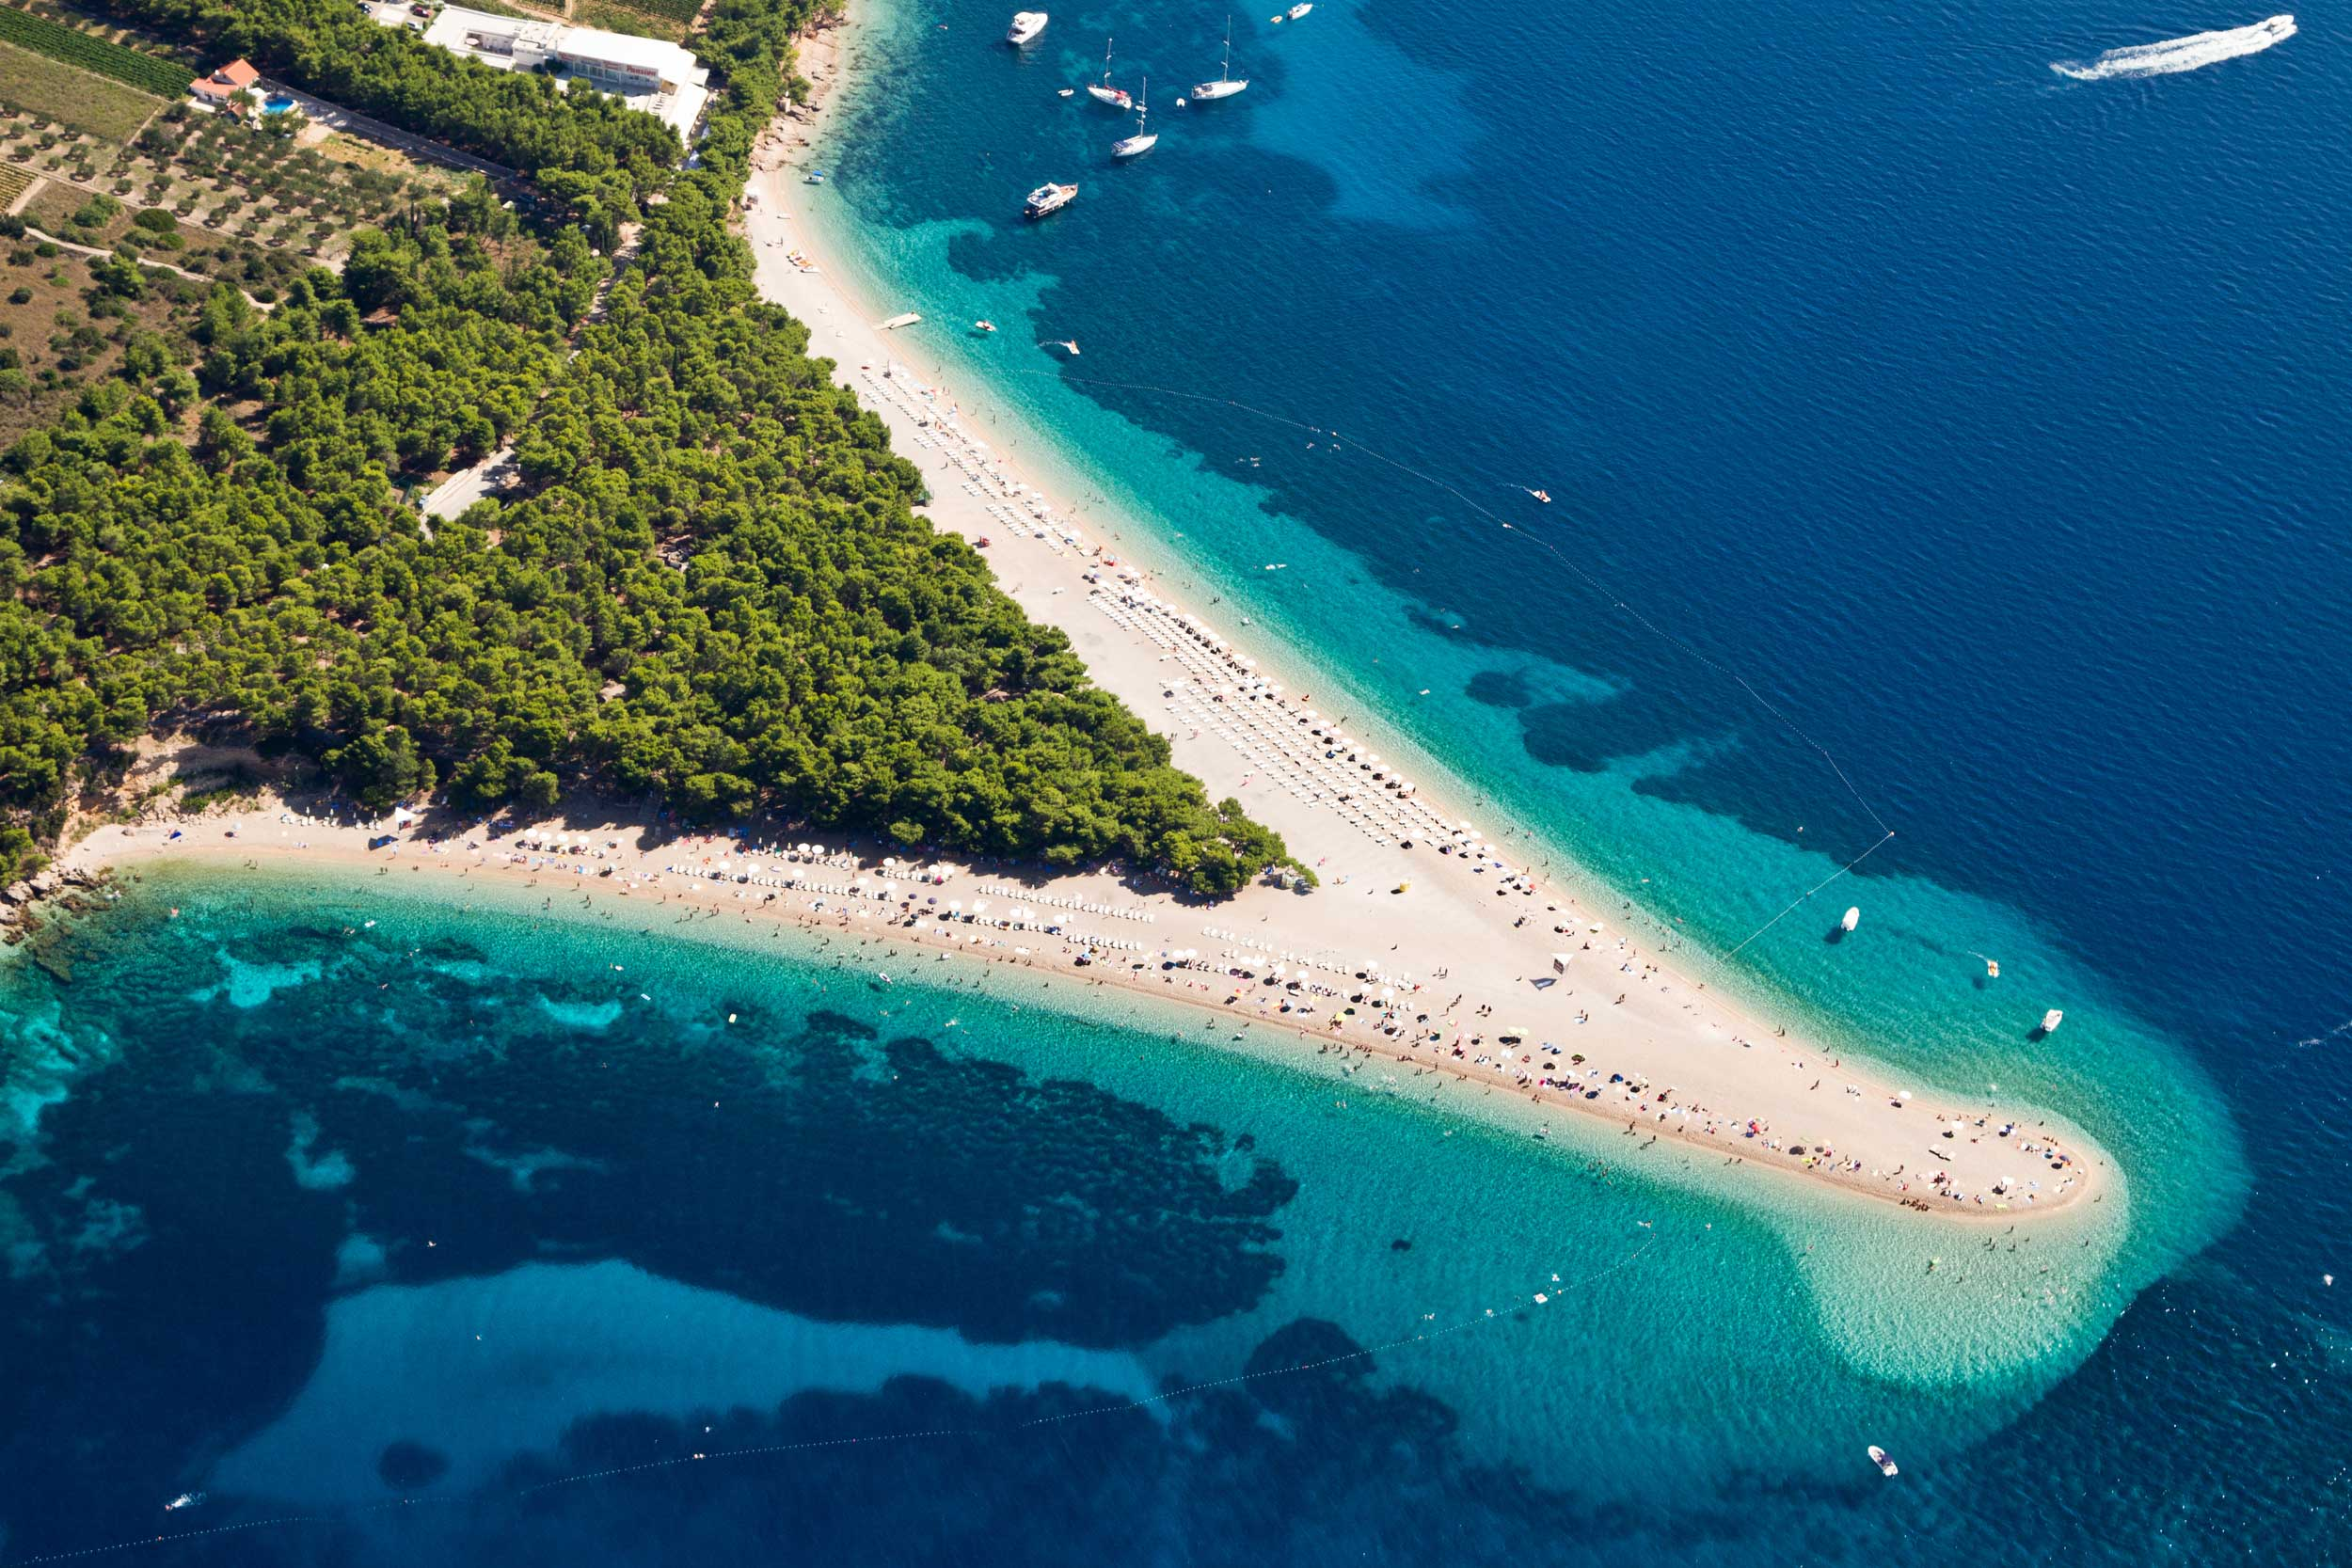 Long narrow V-shaped peninsula with sandy beaches stretching out into azure seas, Croatia